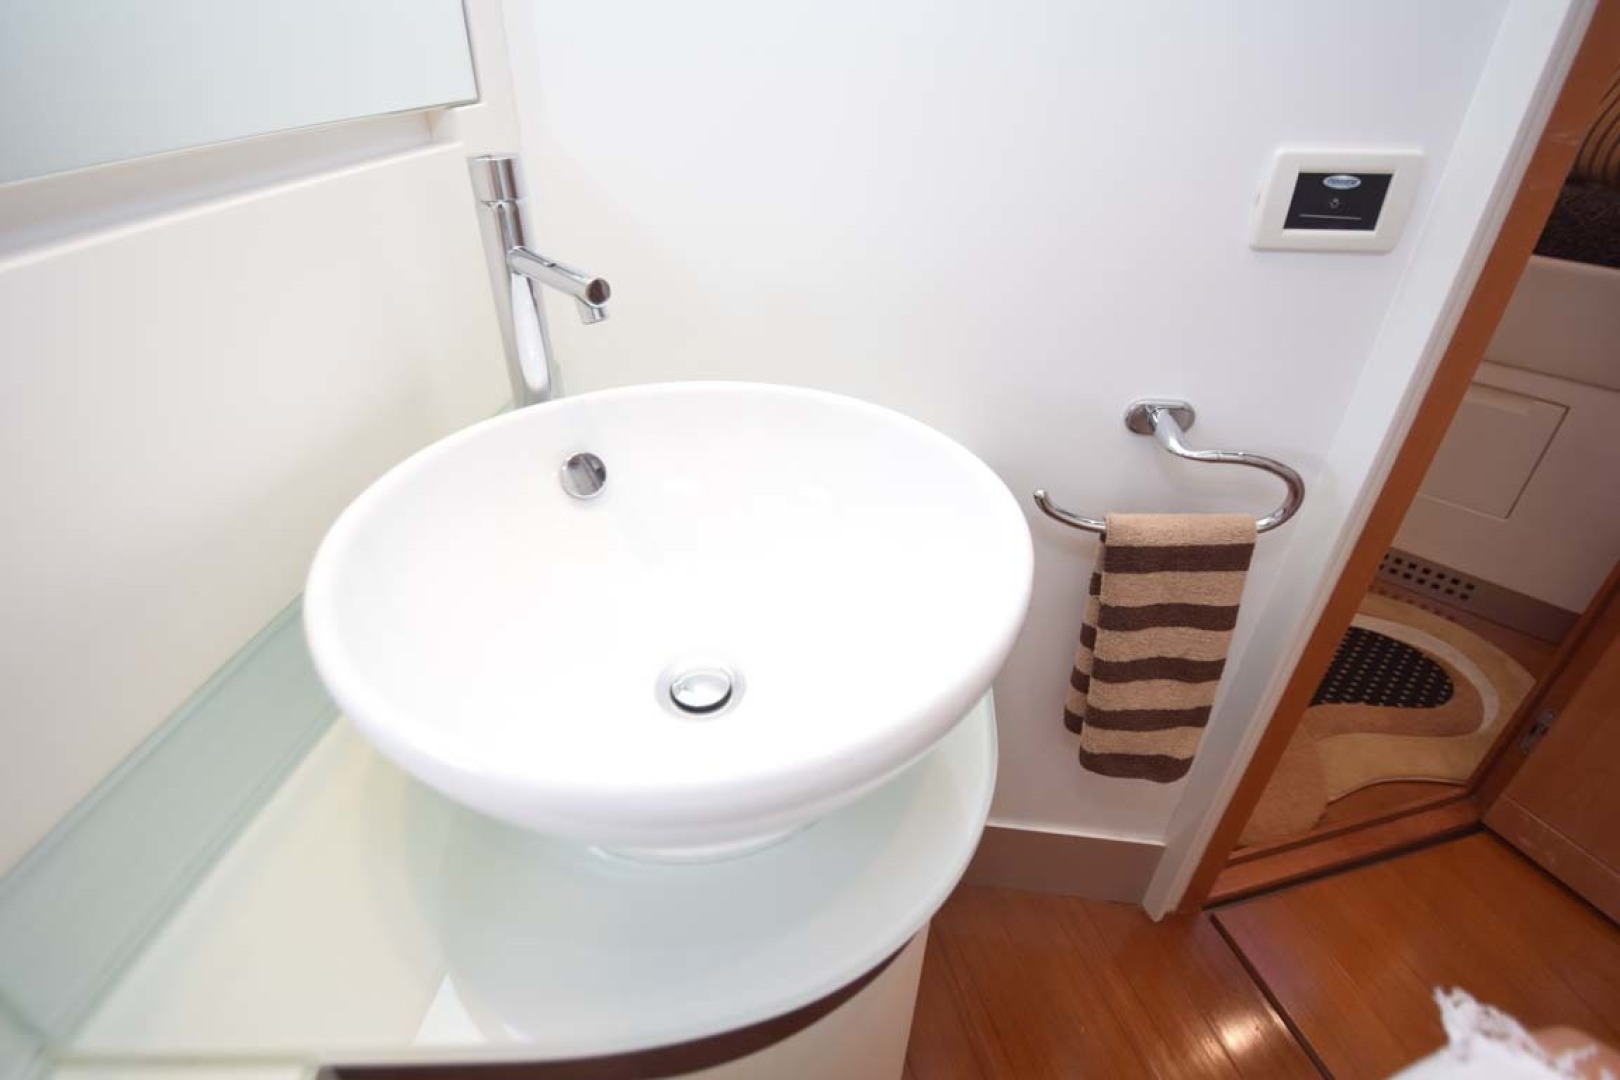 Pershing-62 2007-CHOPIN Lighthouse Point-Florida-United States Ensuite Head V Berth Detail2-1625739 | Thumbnail